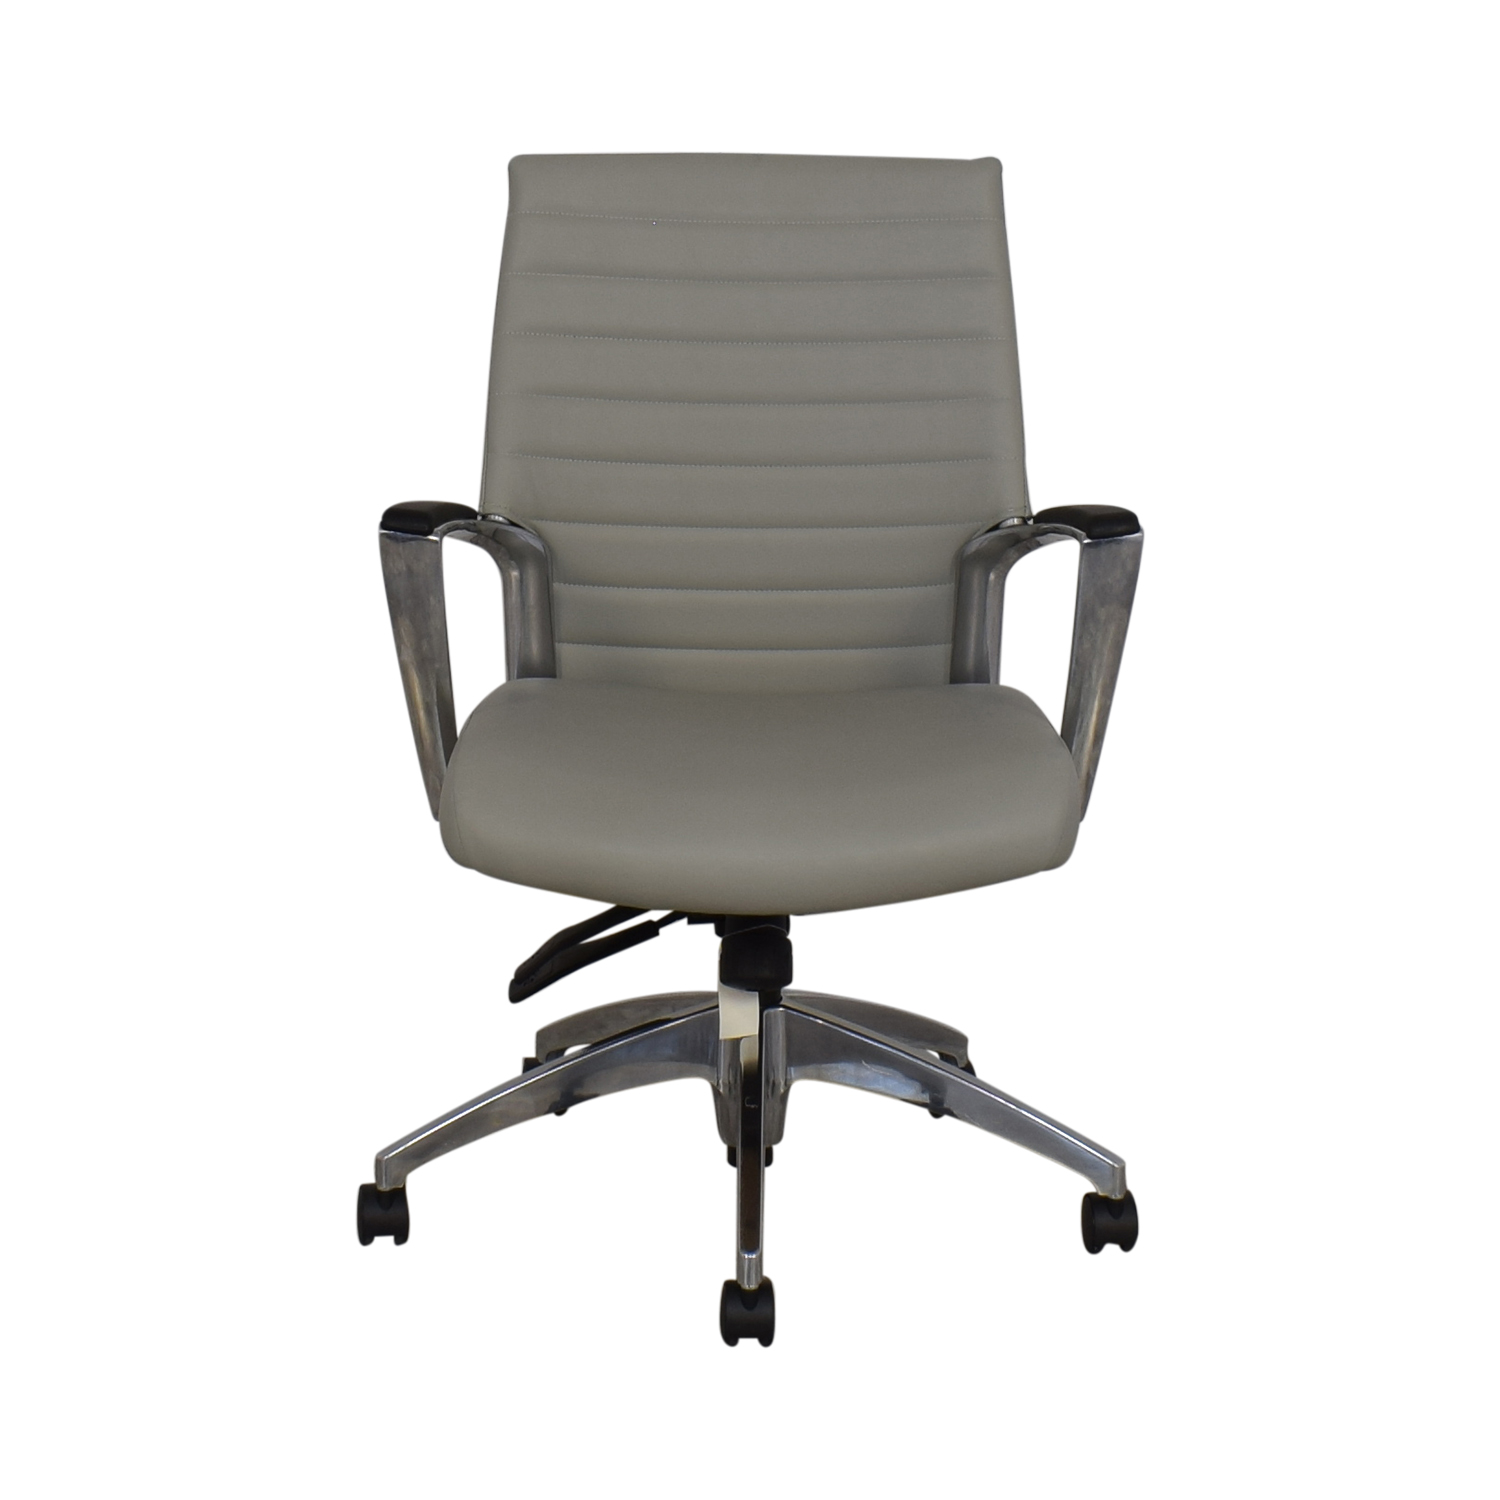 shop Global Global Accord Upholstered Medium Back Tilter Chair online